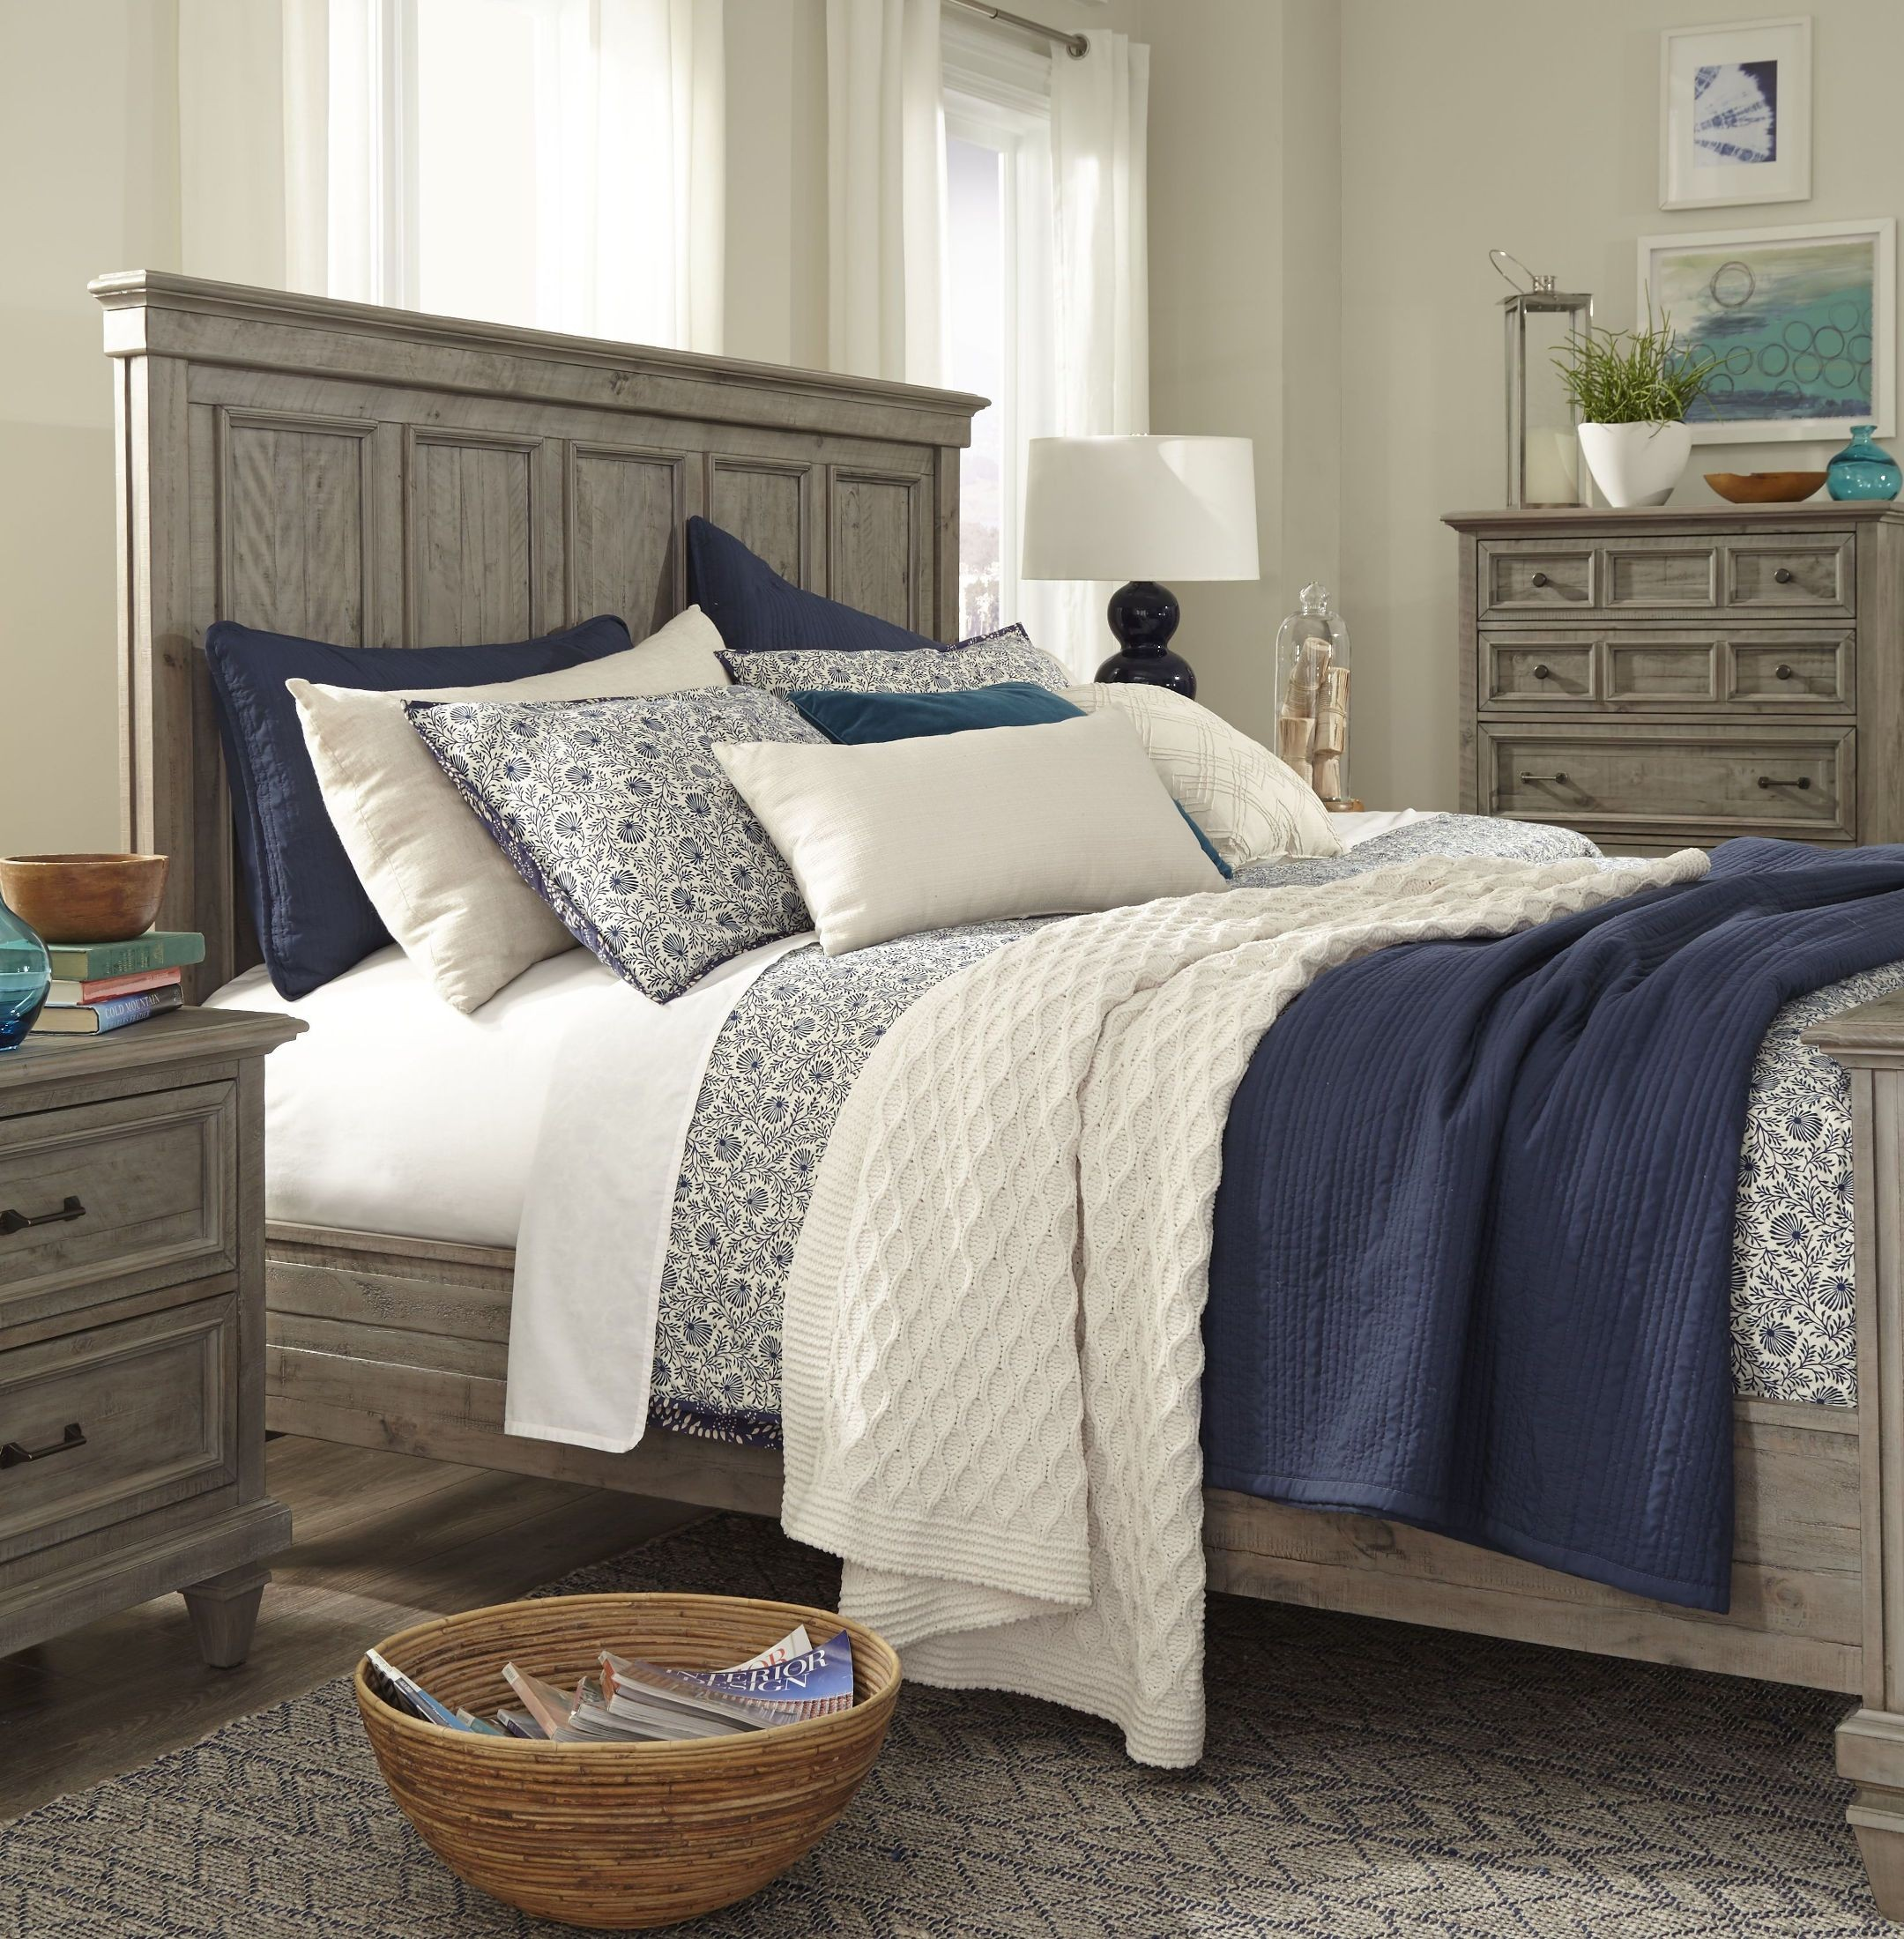 Bedroom sets coleman furniture - Lancaster Dovetail Grey Panel Bedroom Set